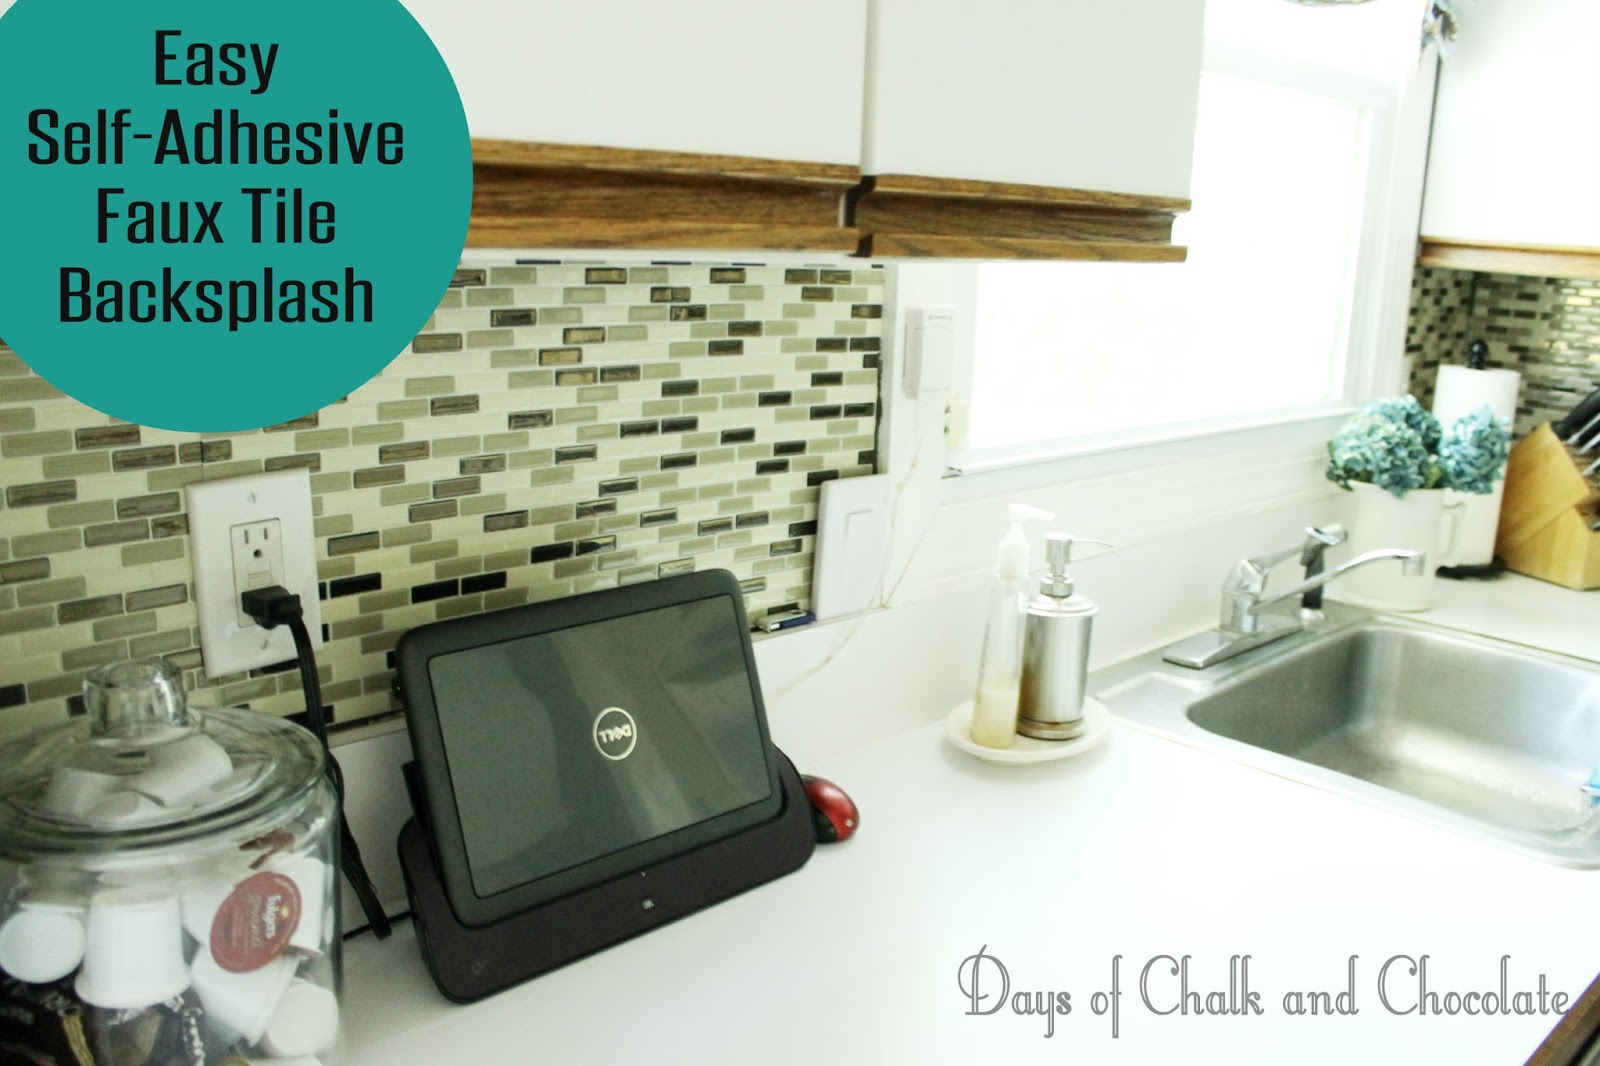 easy diy self-adhesive faux tile backsplash | days of chalk and